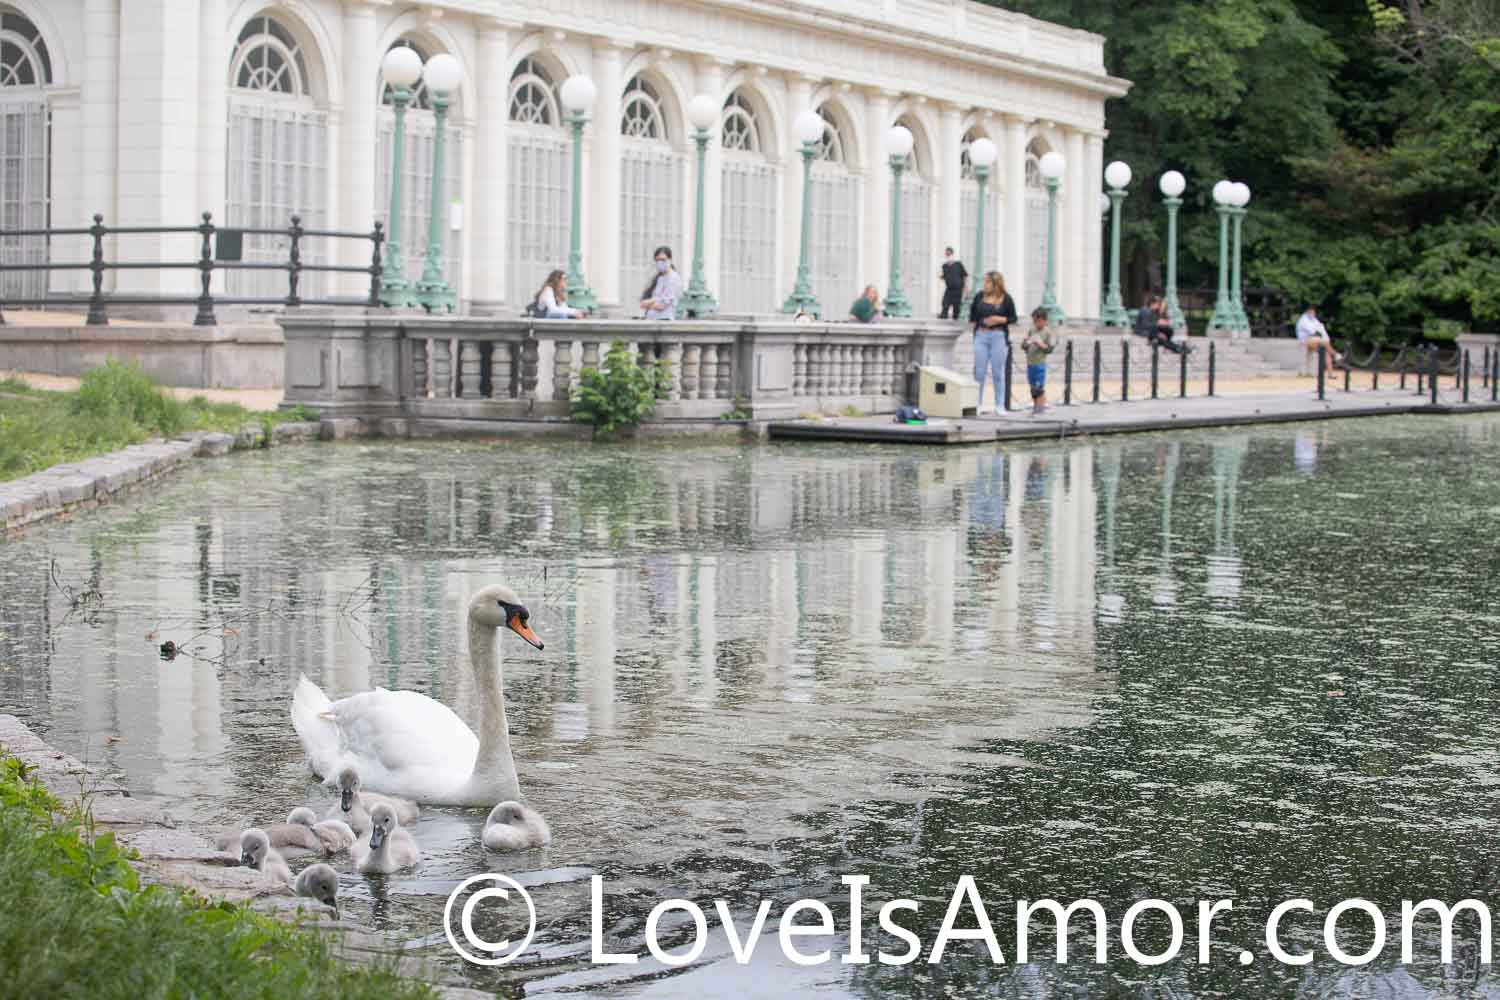 Wednesday, June 2, 2021. Prospect Park, Brooklyn; New York City – People at the Boathouse + Audubon Center watching the mother swan and her 6 babies (cygnets). Photo by Javier Soriano/www.JavierSoriano.com